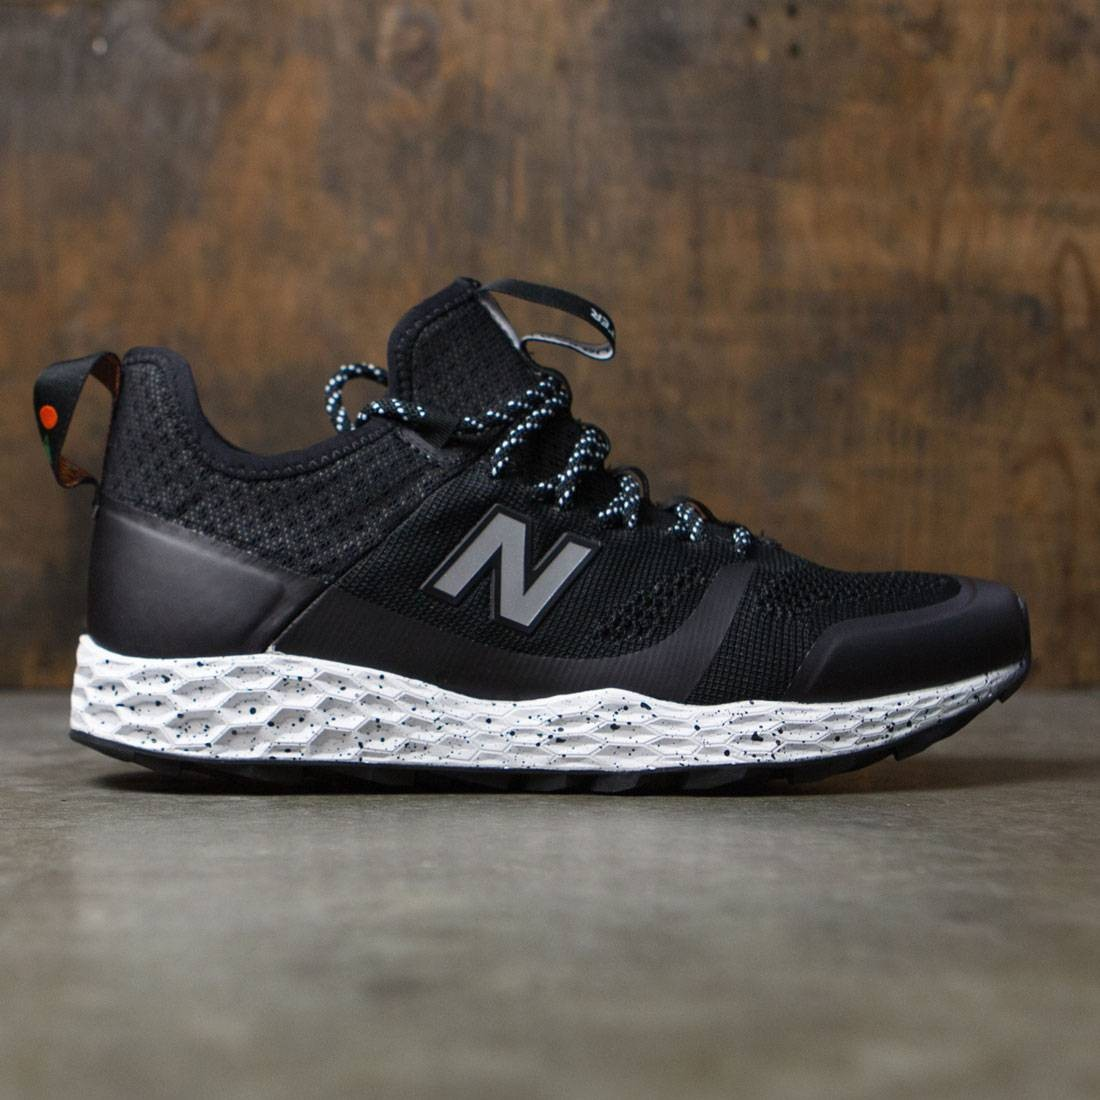 984e8b3a5dd New Balance Men Fresh Foam Trailbuster MFLTBDBK black white